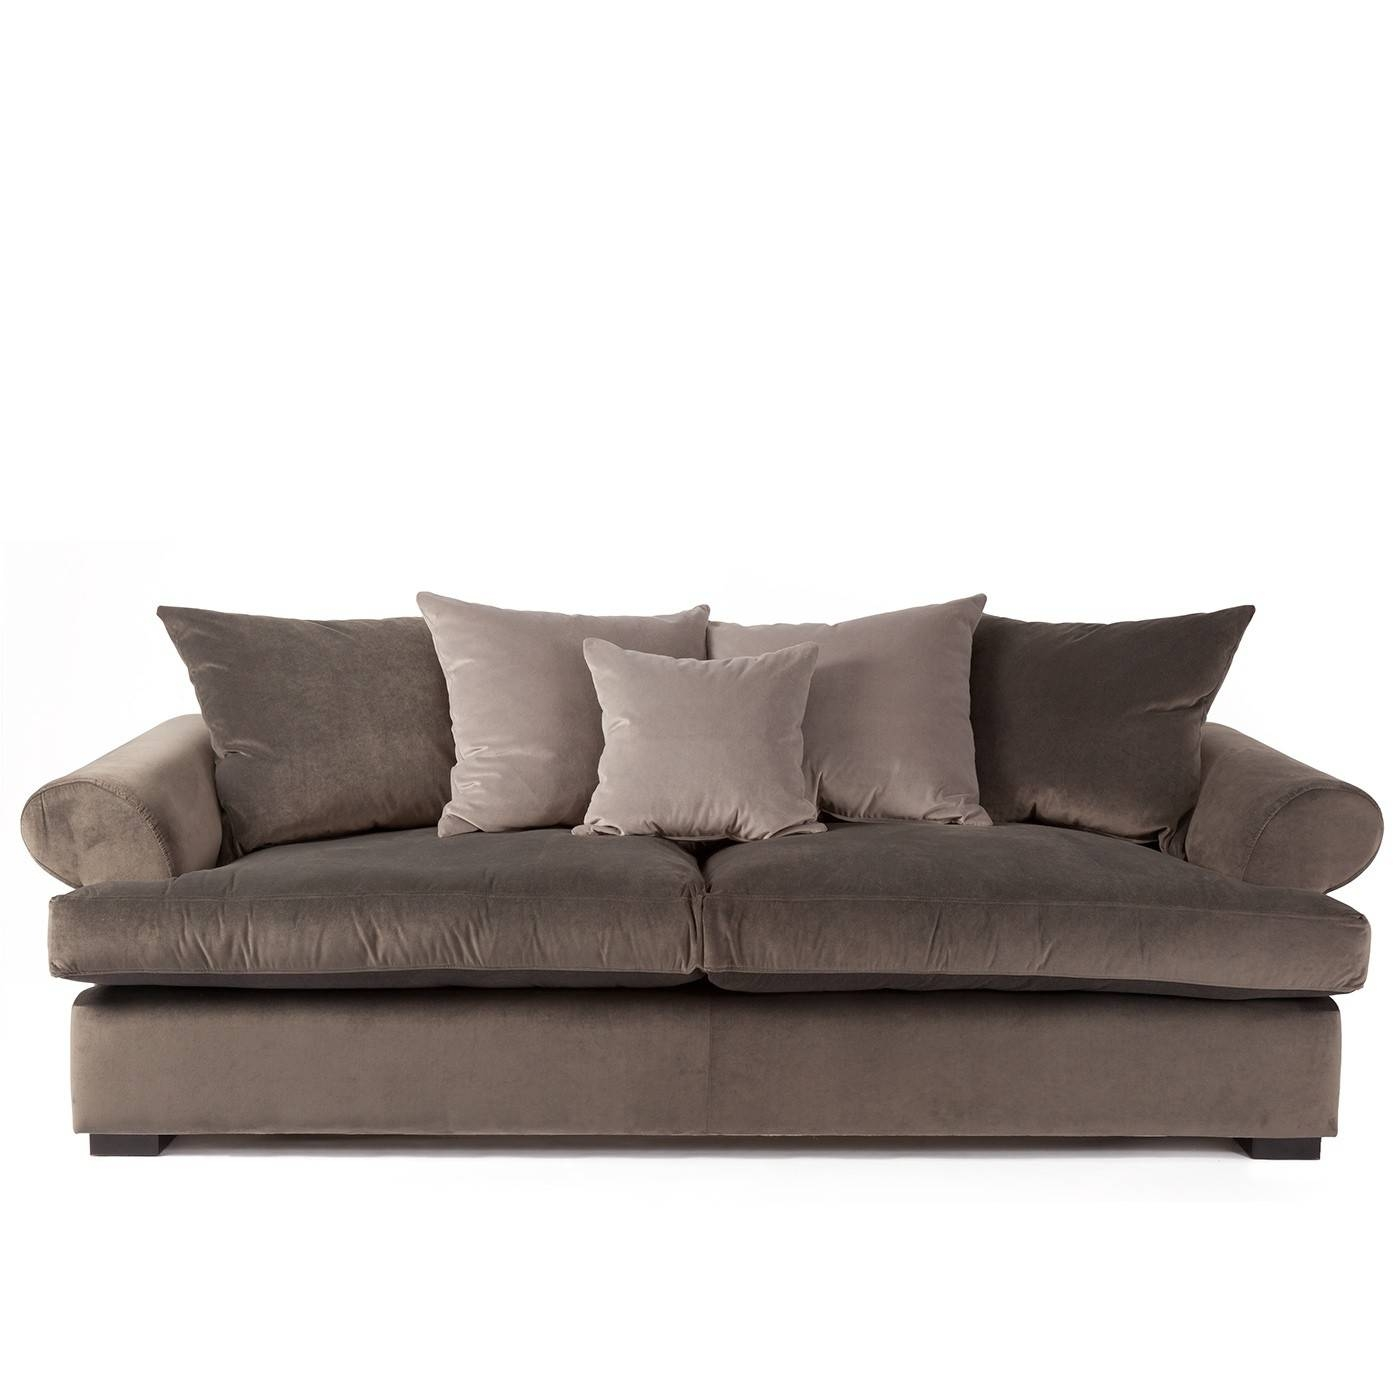 Lincoln Sofa Bed - Raft Furniture, London with Large 4 Seater Sofas (Image 26 of 30)